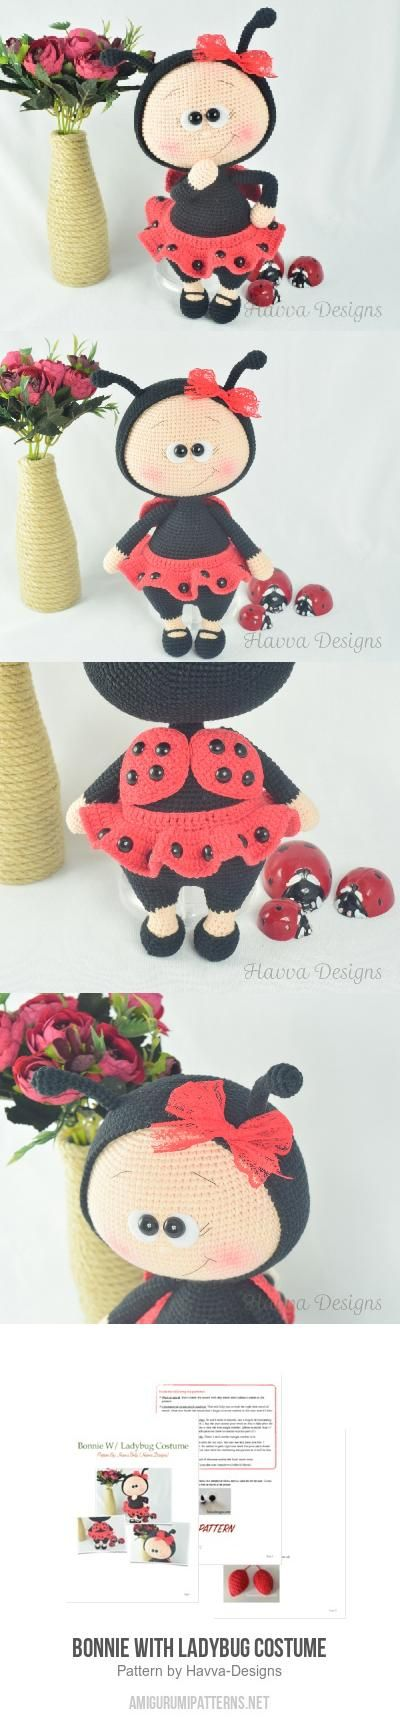 Bonnie With Ladybug Costume amigurumi pattern